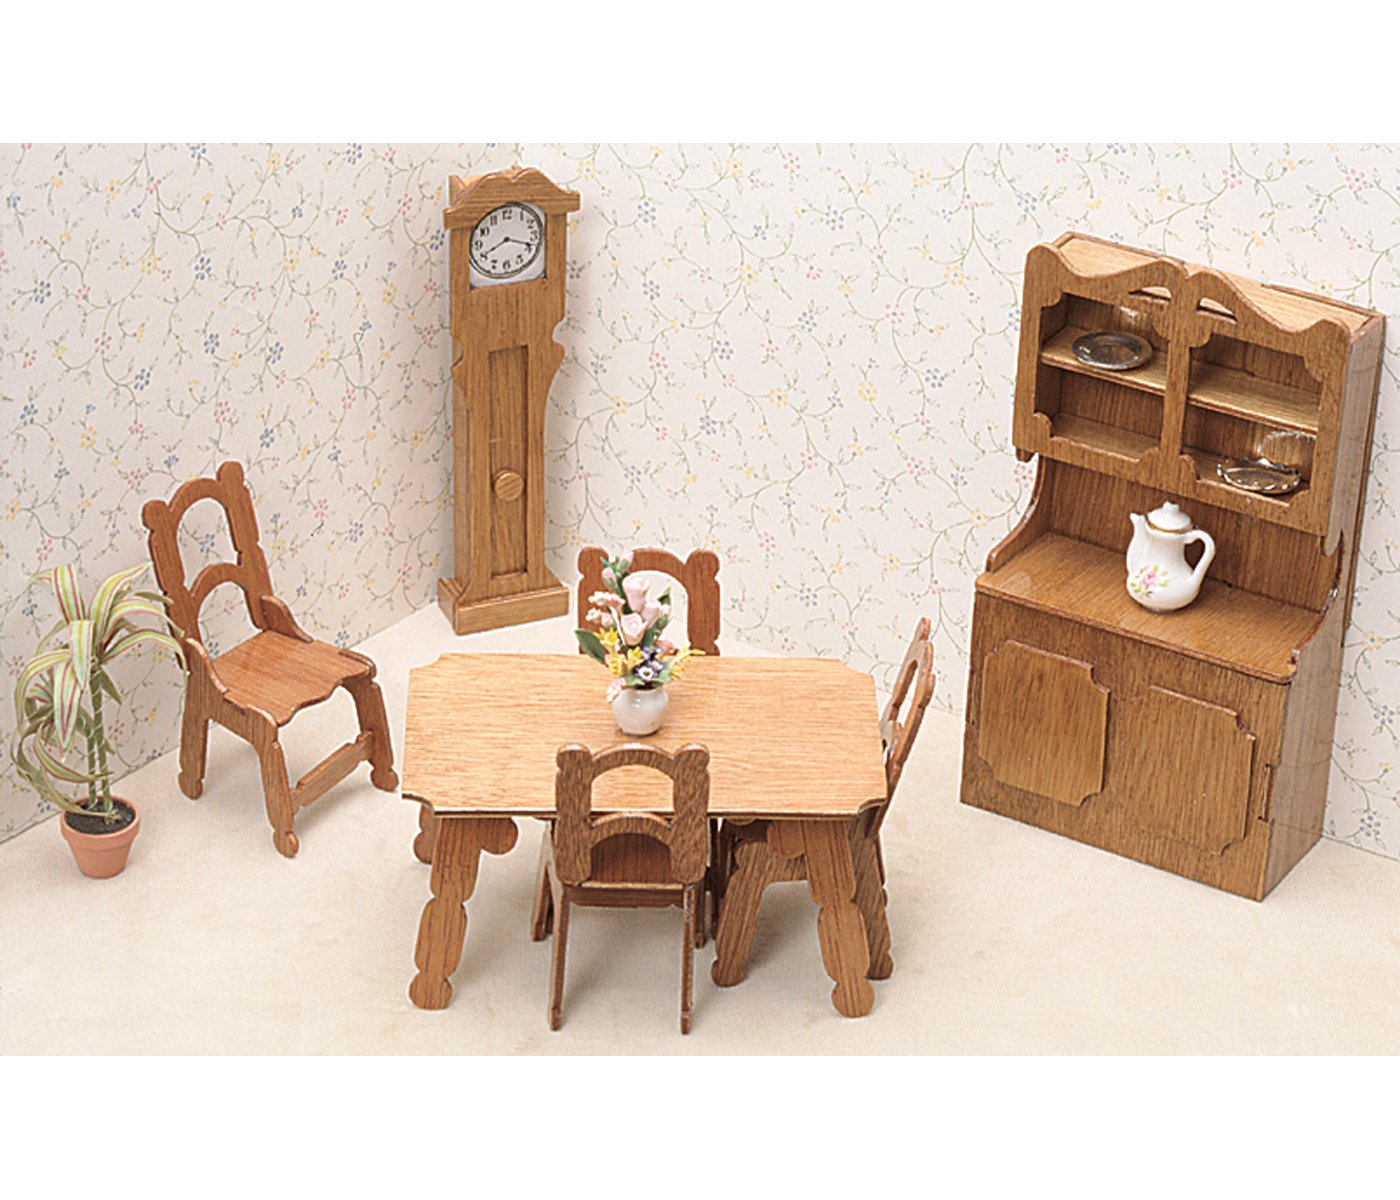 Amazon.com: Greenleaf Dollhouse Furniture Kit for Kitchen: Arts, Crafts &  Sewing